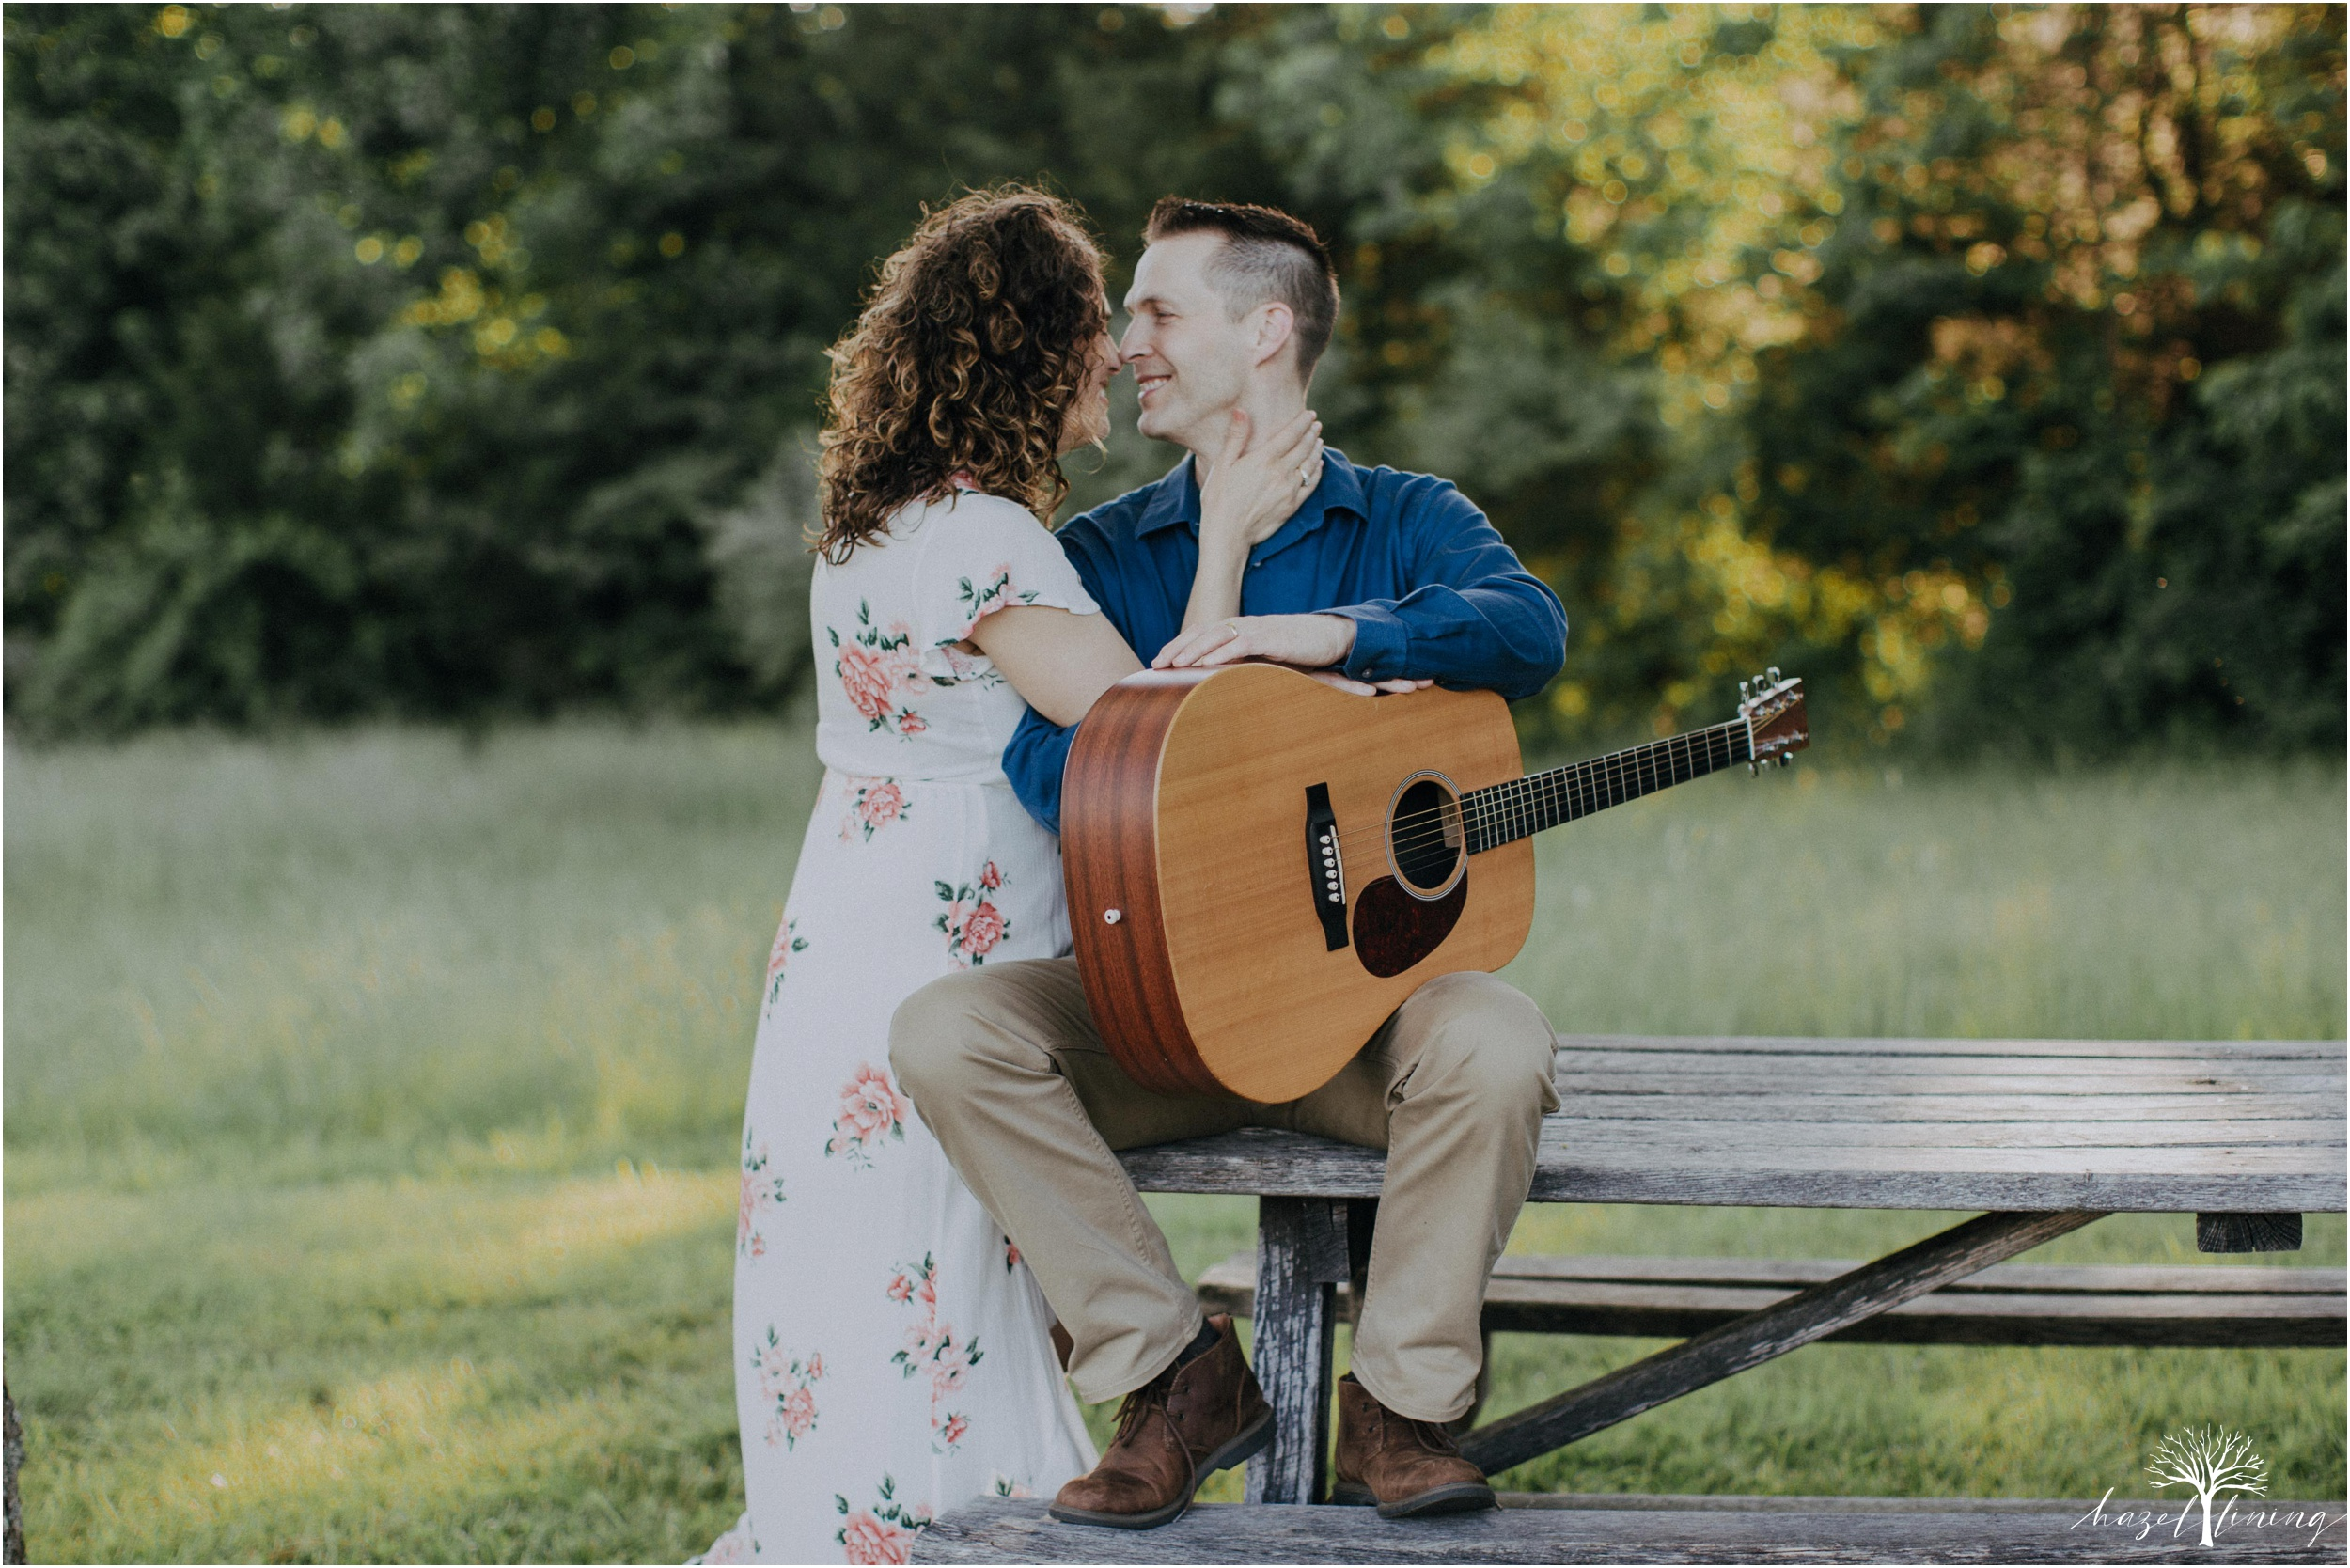 pete-rachelle-sawadski-20-year-anniversary-portrait-session-hazel-lining-photography-destination-elopement-wedding-engagement-photography_0272.jpg